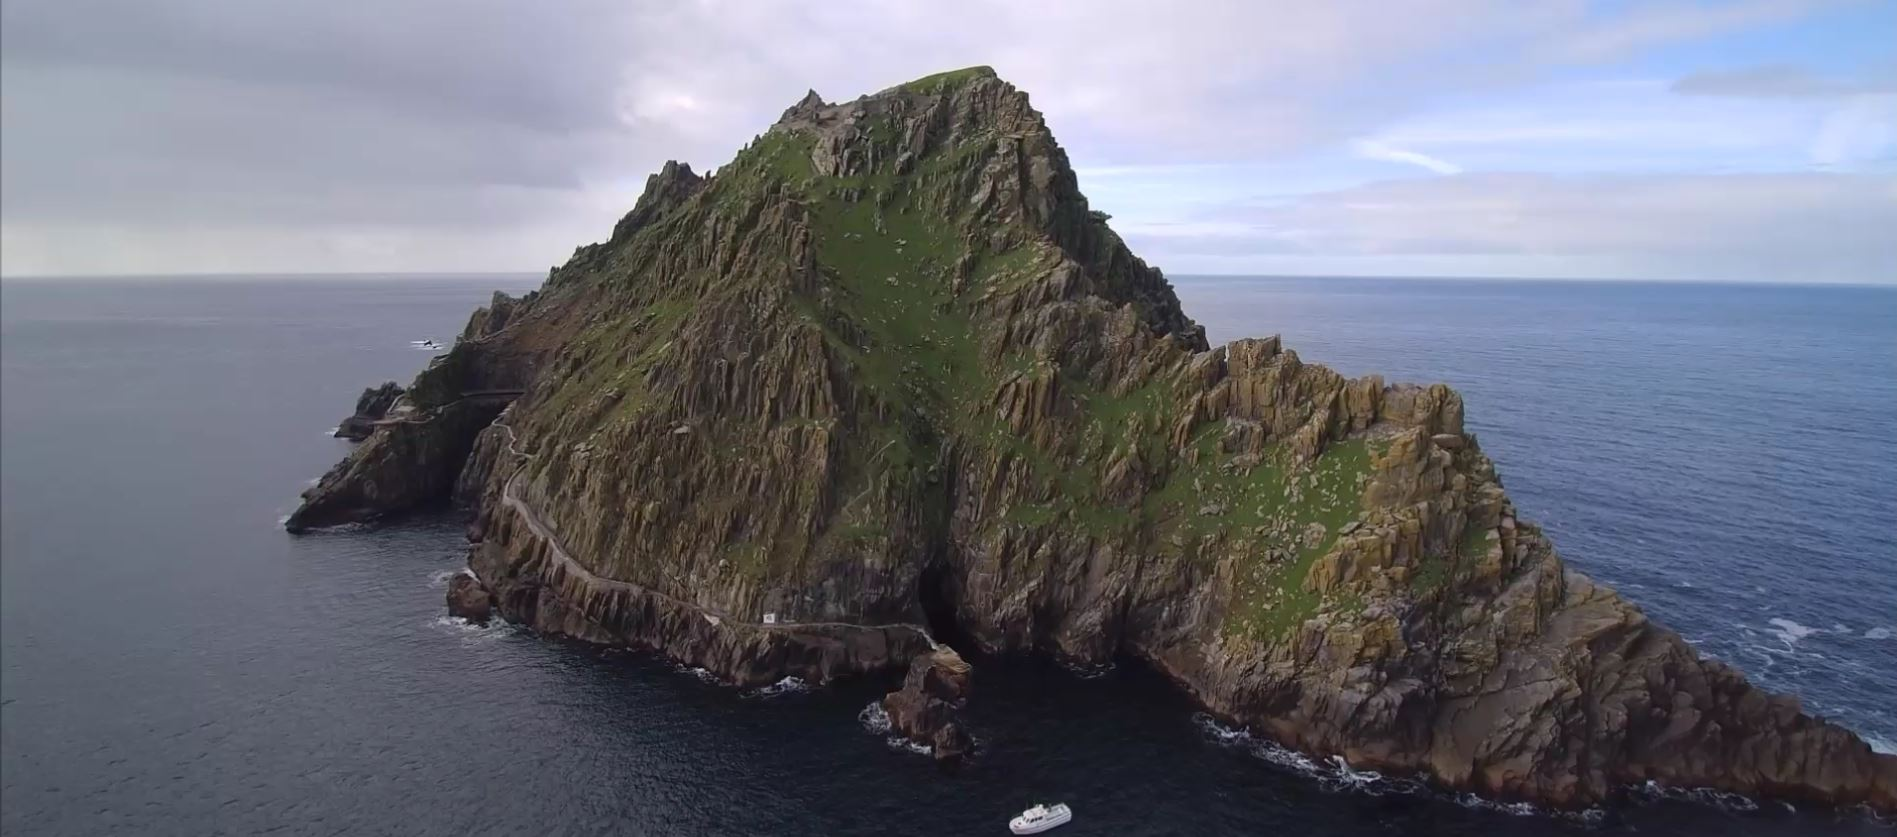 skellig michael from the air